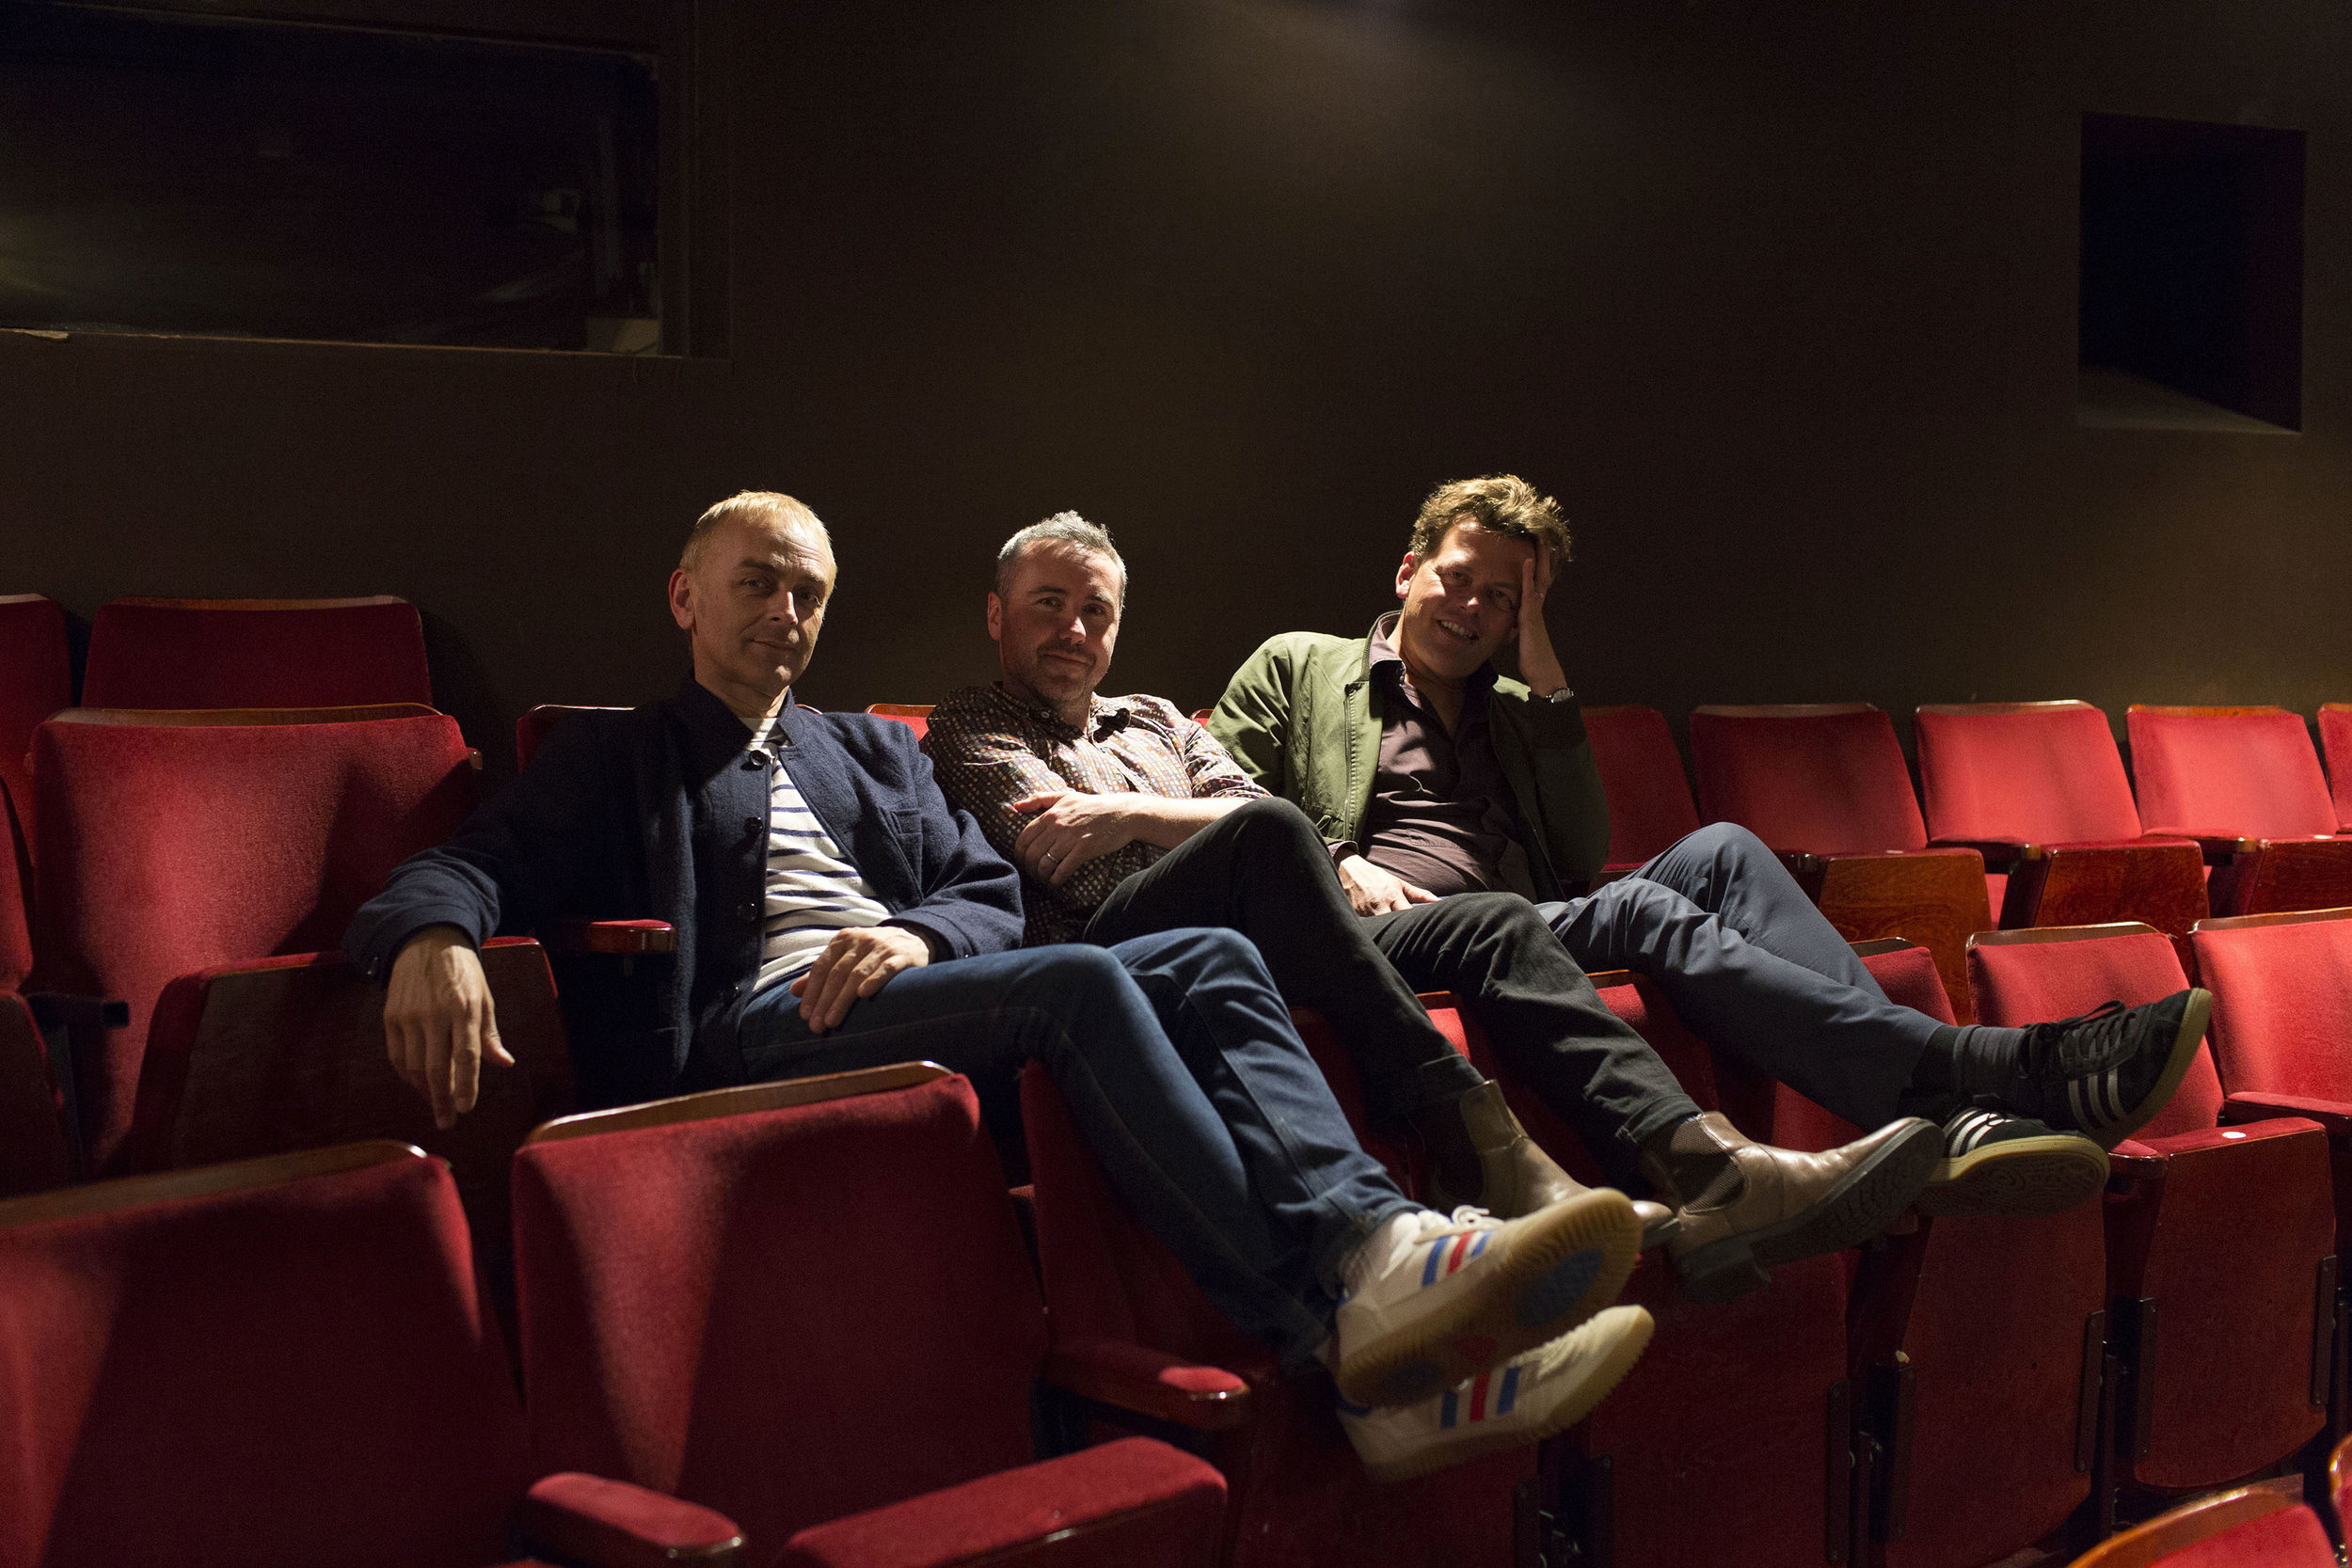 Karl Hyde, Scott Graham and Simon Stephens at the Lyric Hammersmith theatre in London for The New York Times